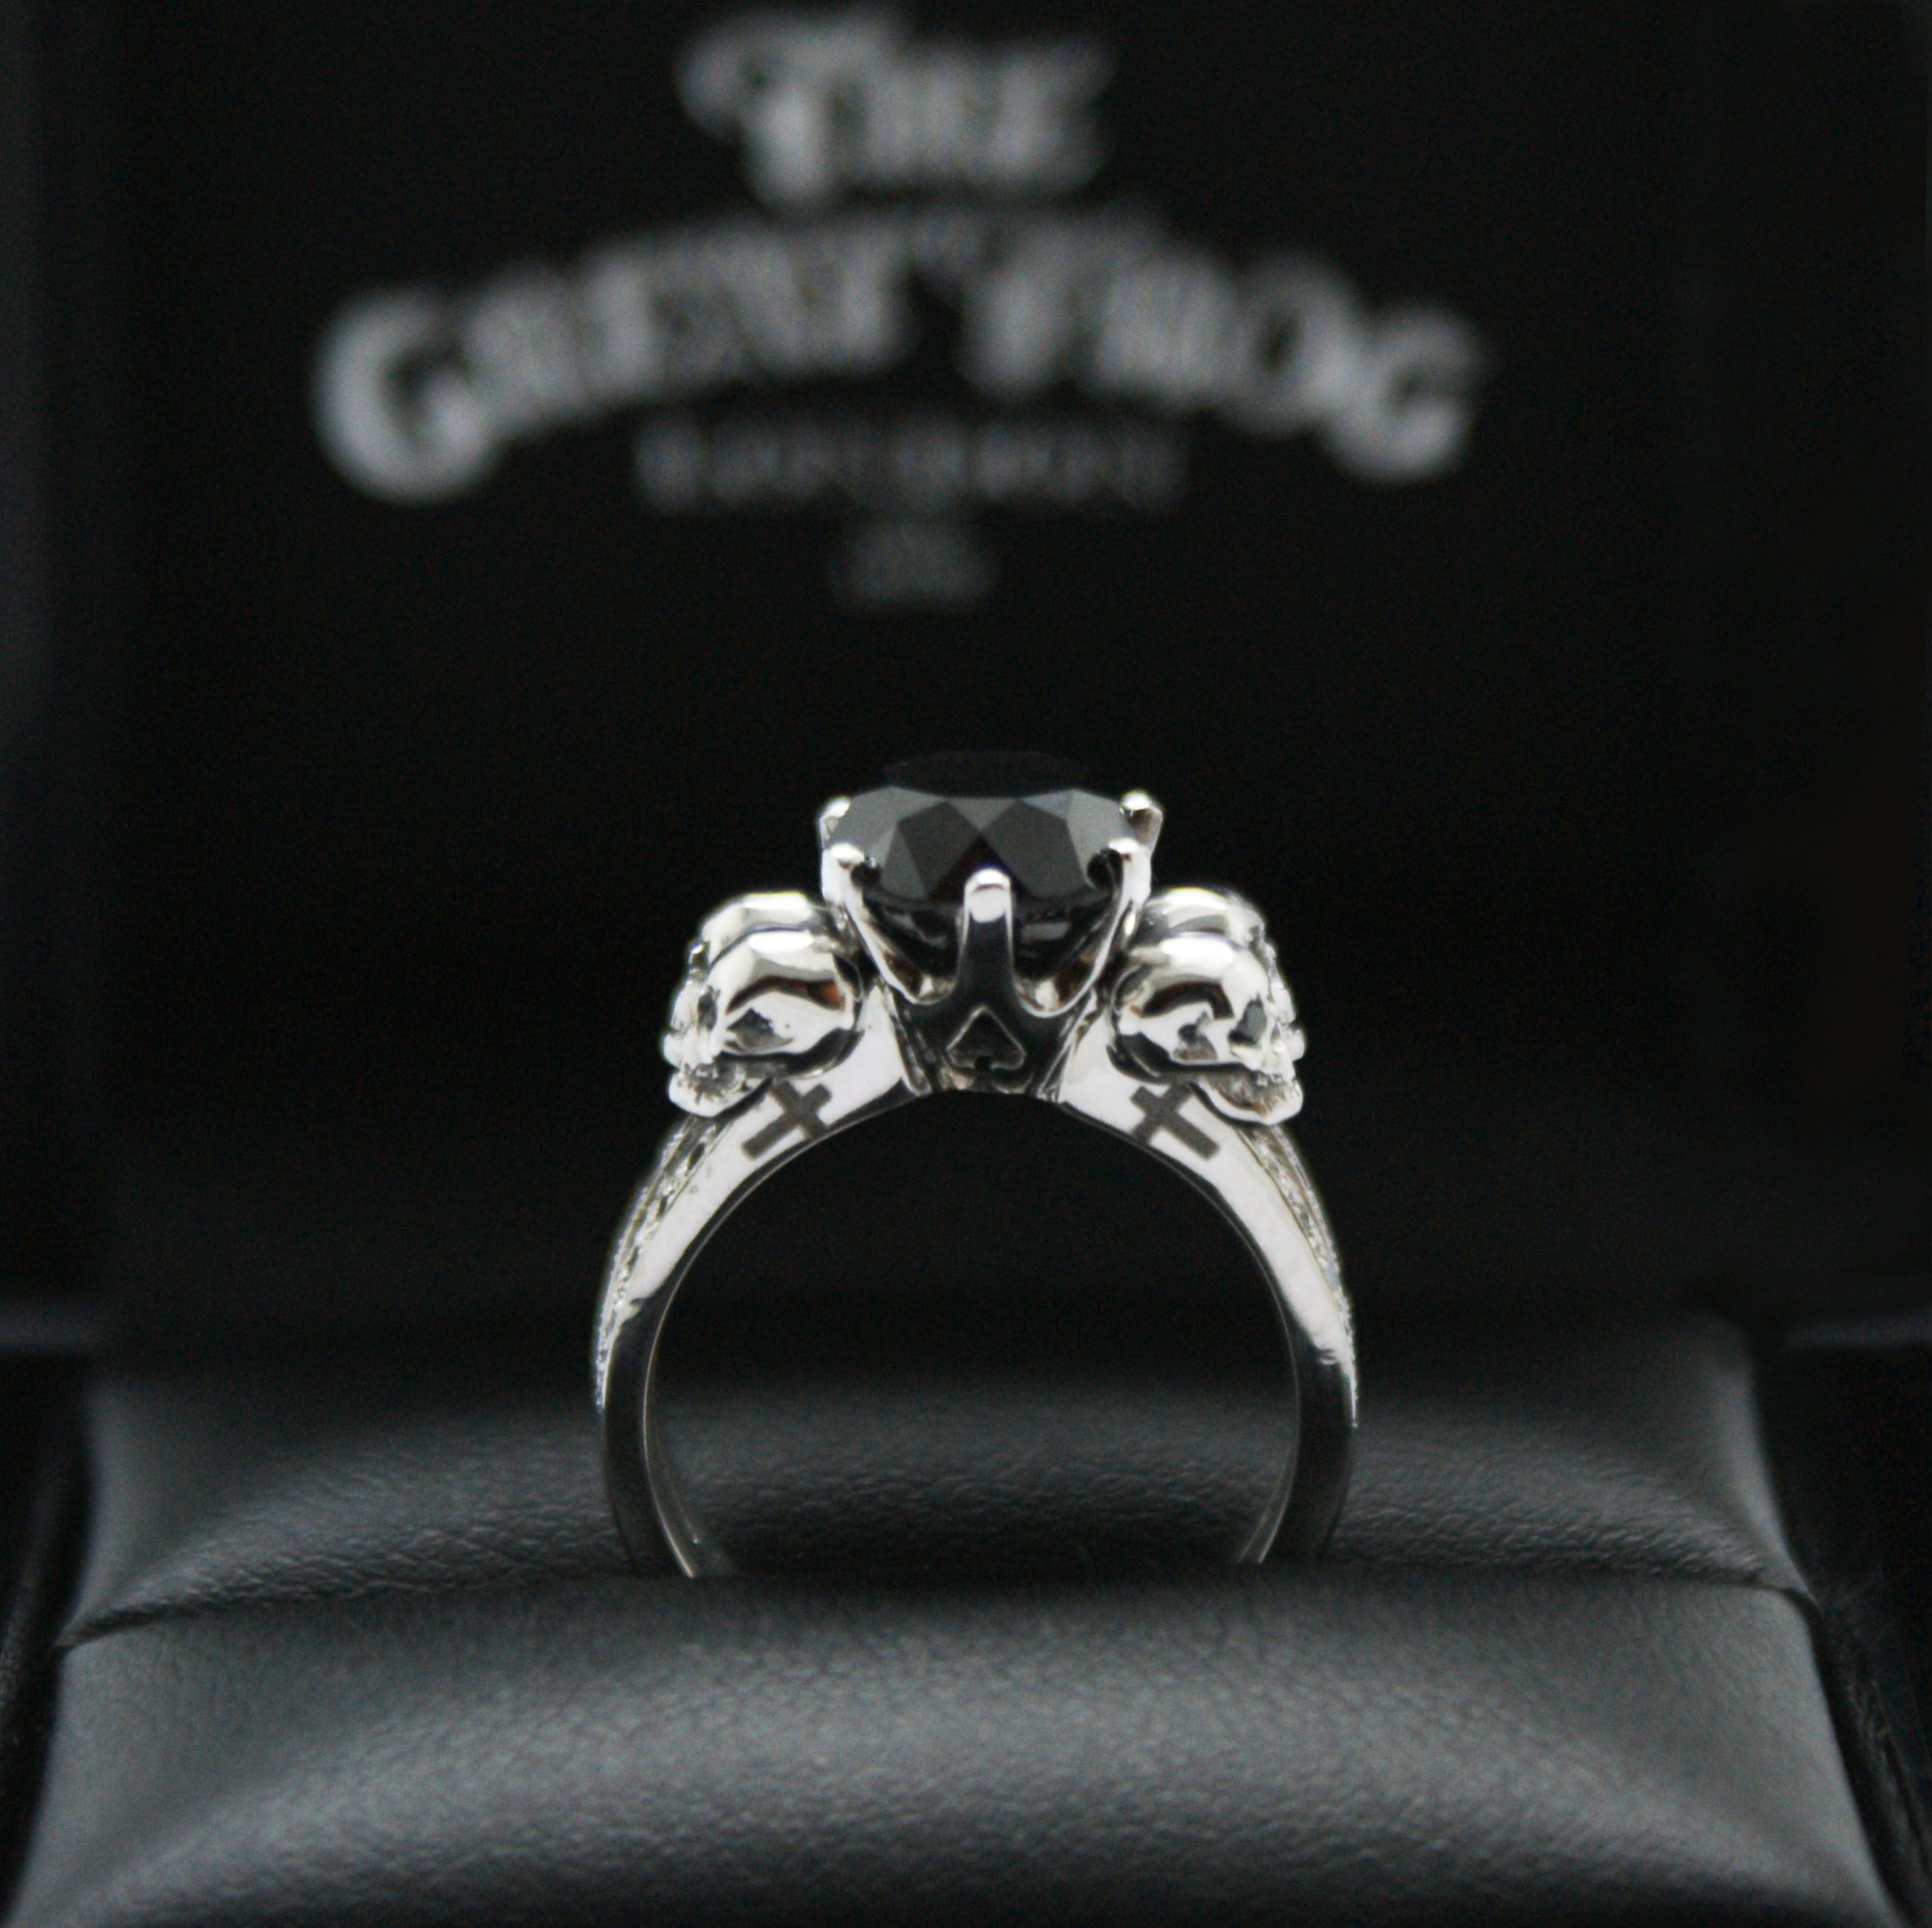 s kat engagement von d punk rings a ring such the did rock on this london awesome great frog pin job